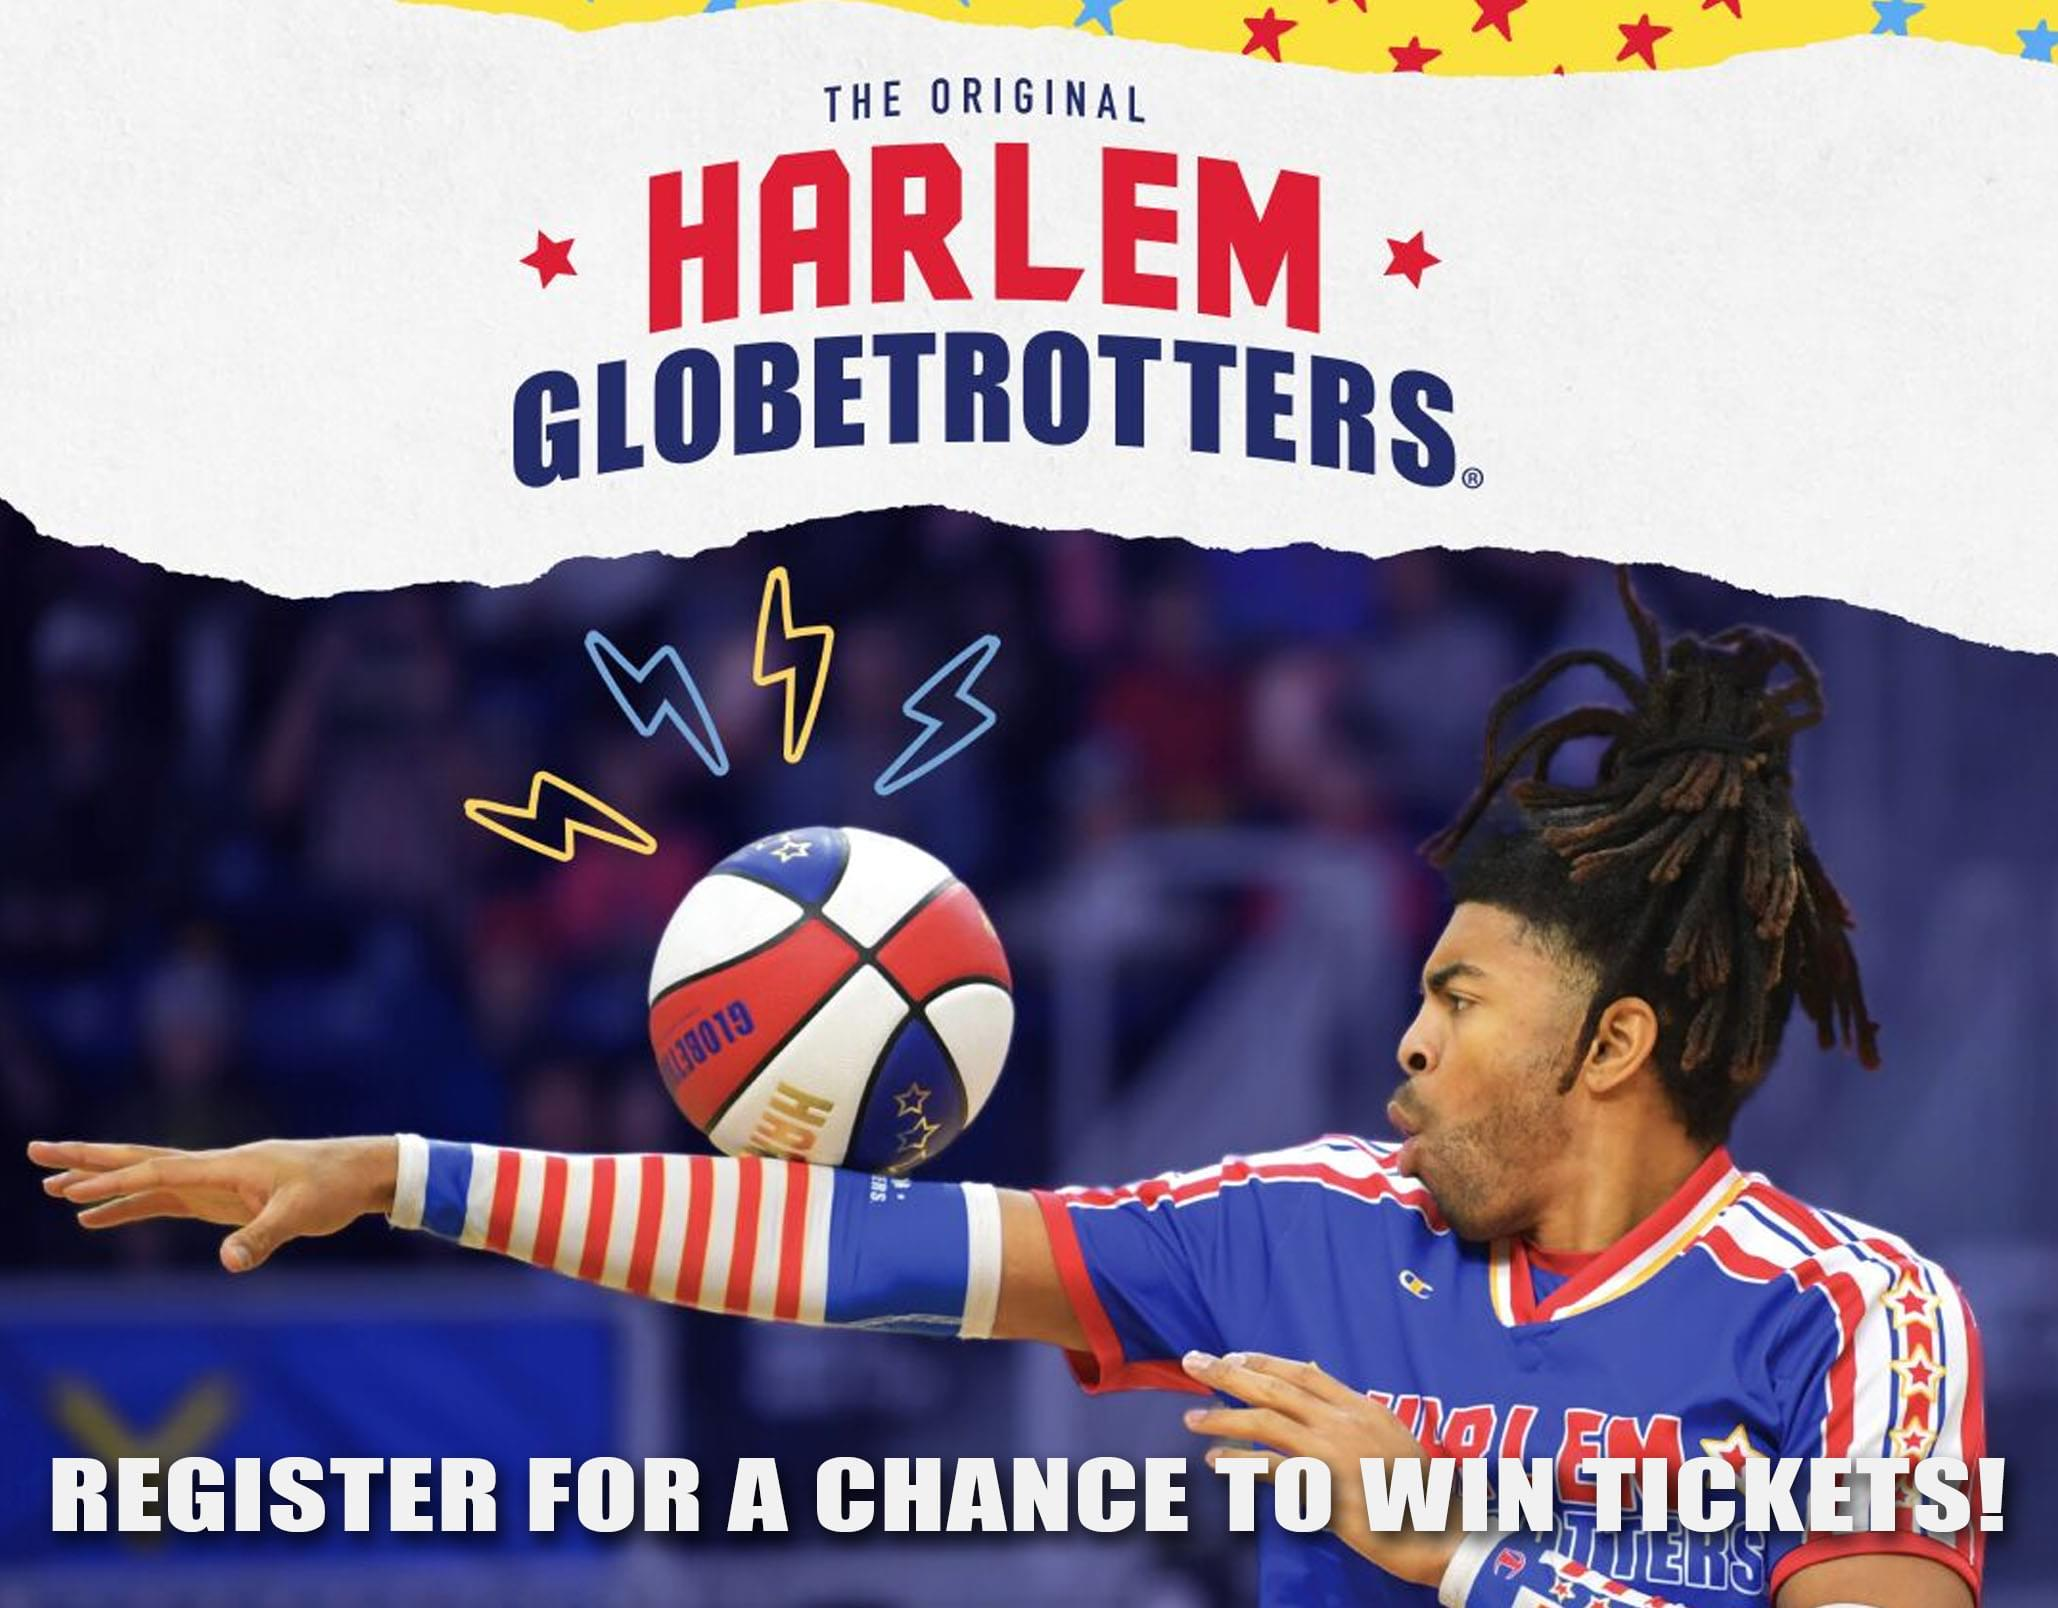 Enter to Win Harlem Globetrotters Tickets